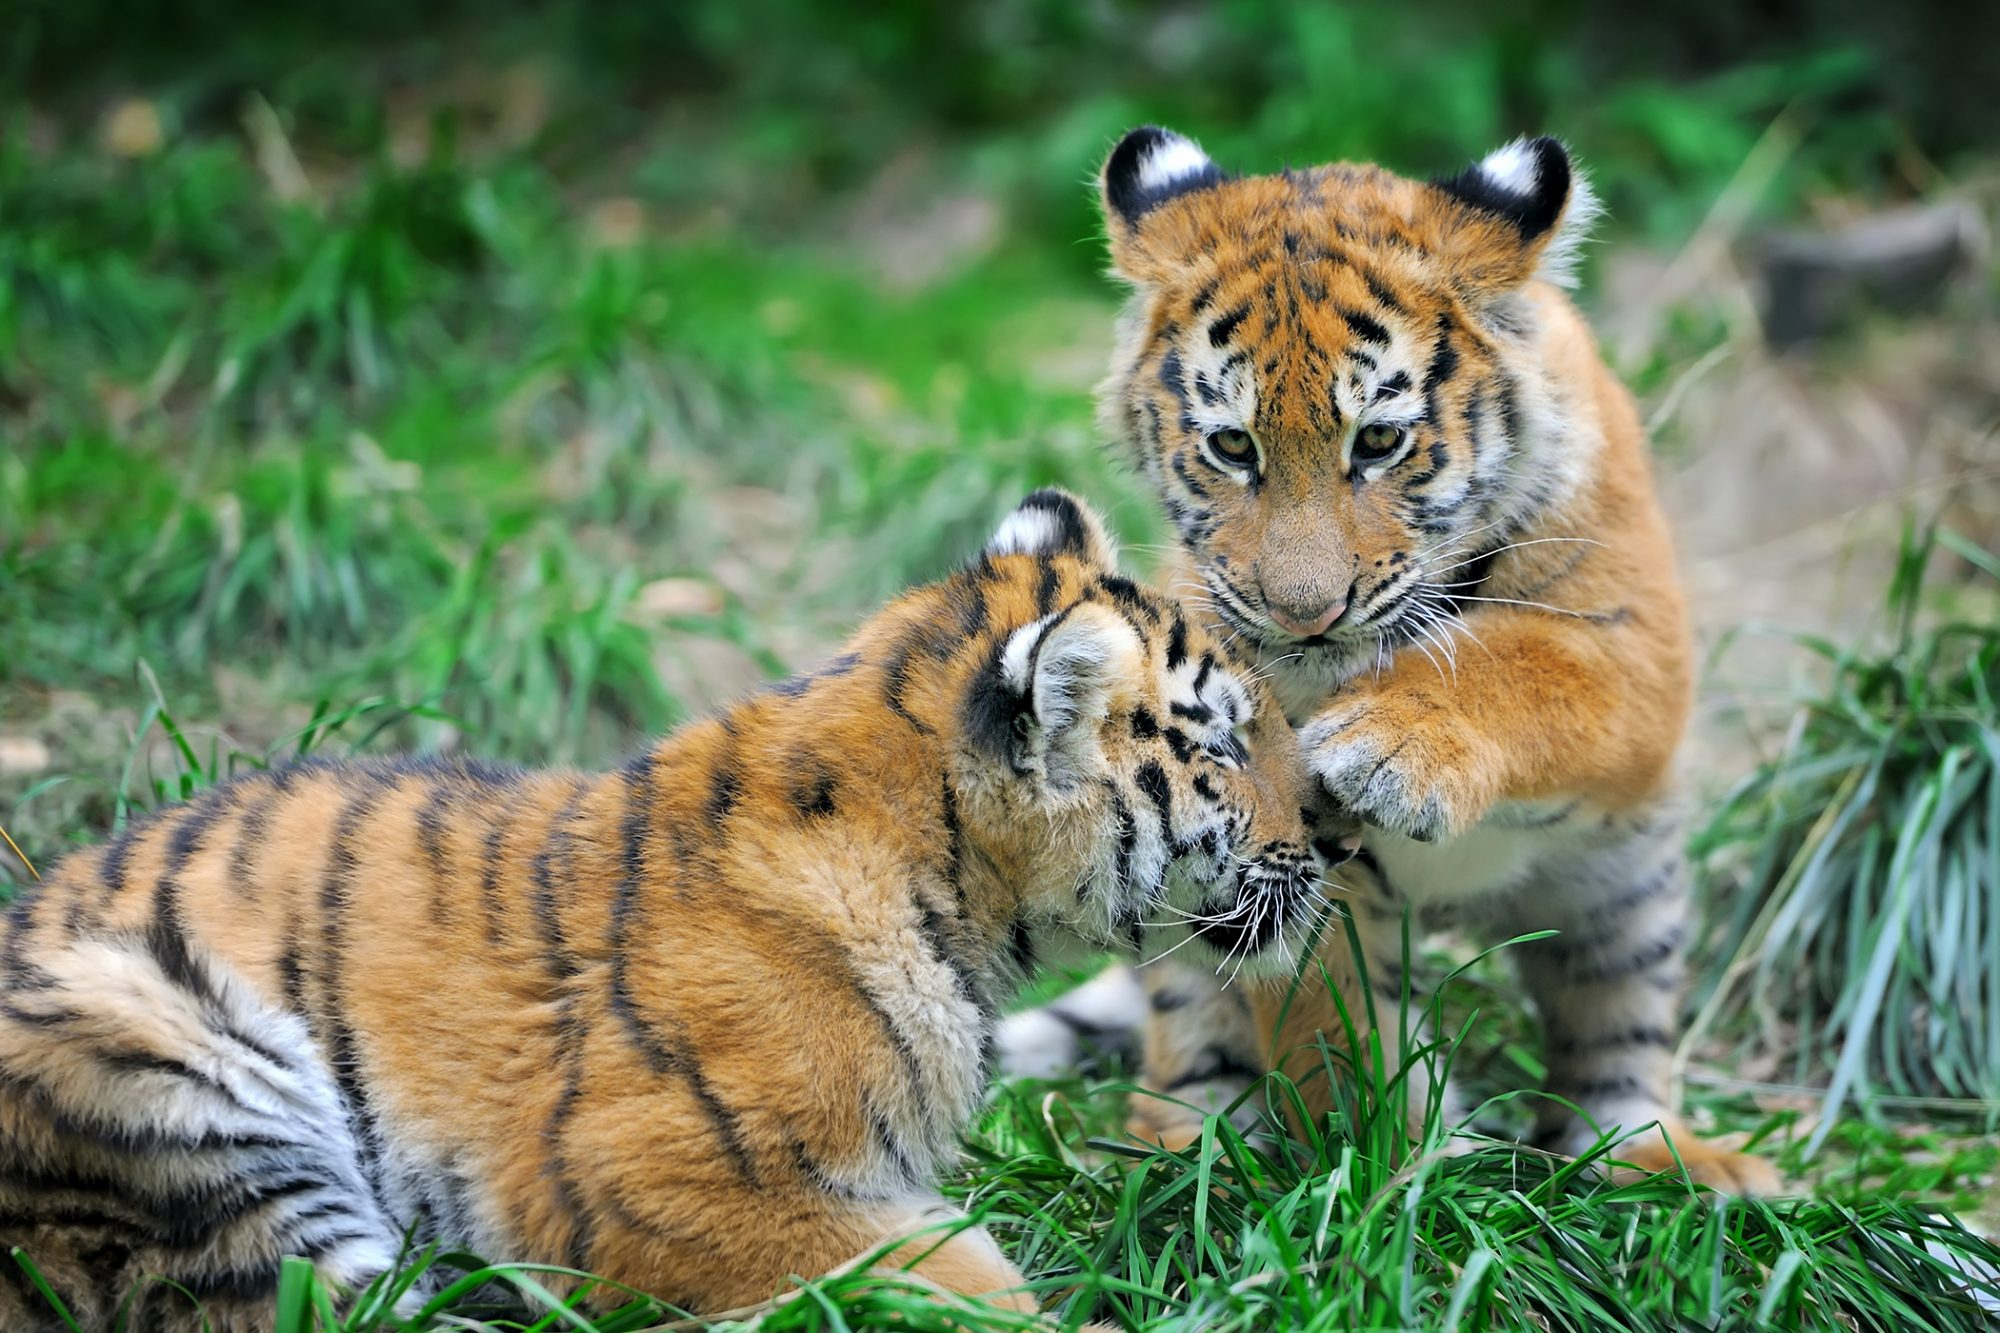 two tiger cubs playing together